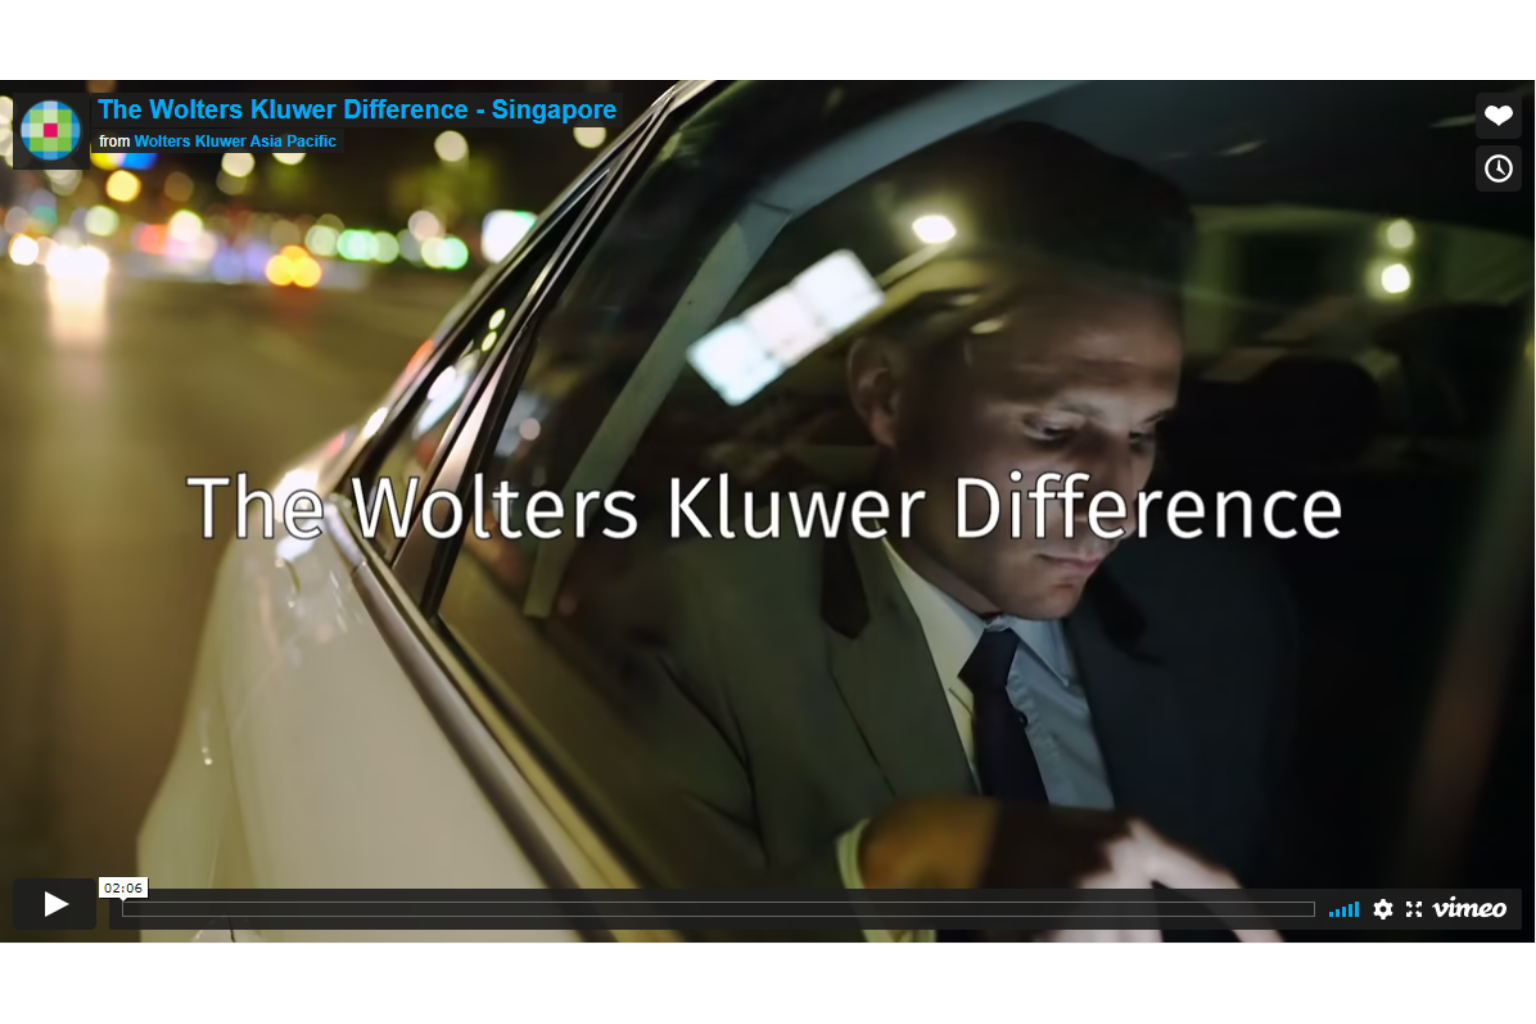 The Wolters Kluwer Difference Singapore